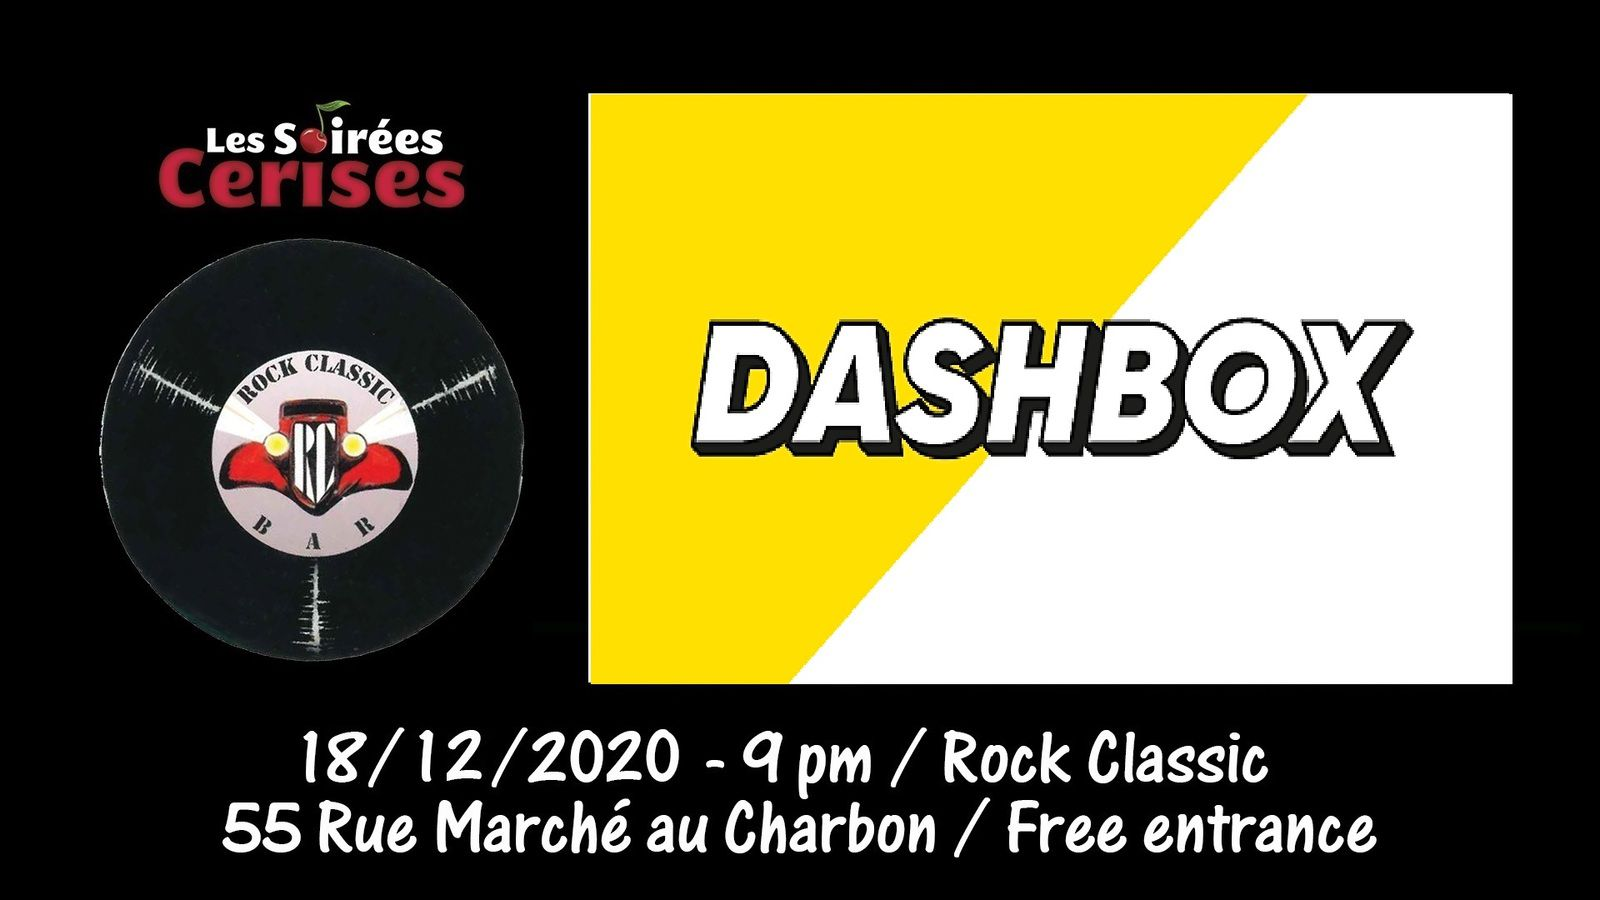 🎵 DASHBOX @ Rock Classic - 18/12/2020 - 21h00 - Entrée gratuite / Free entrance